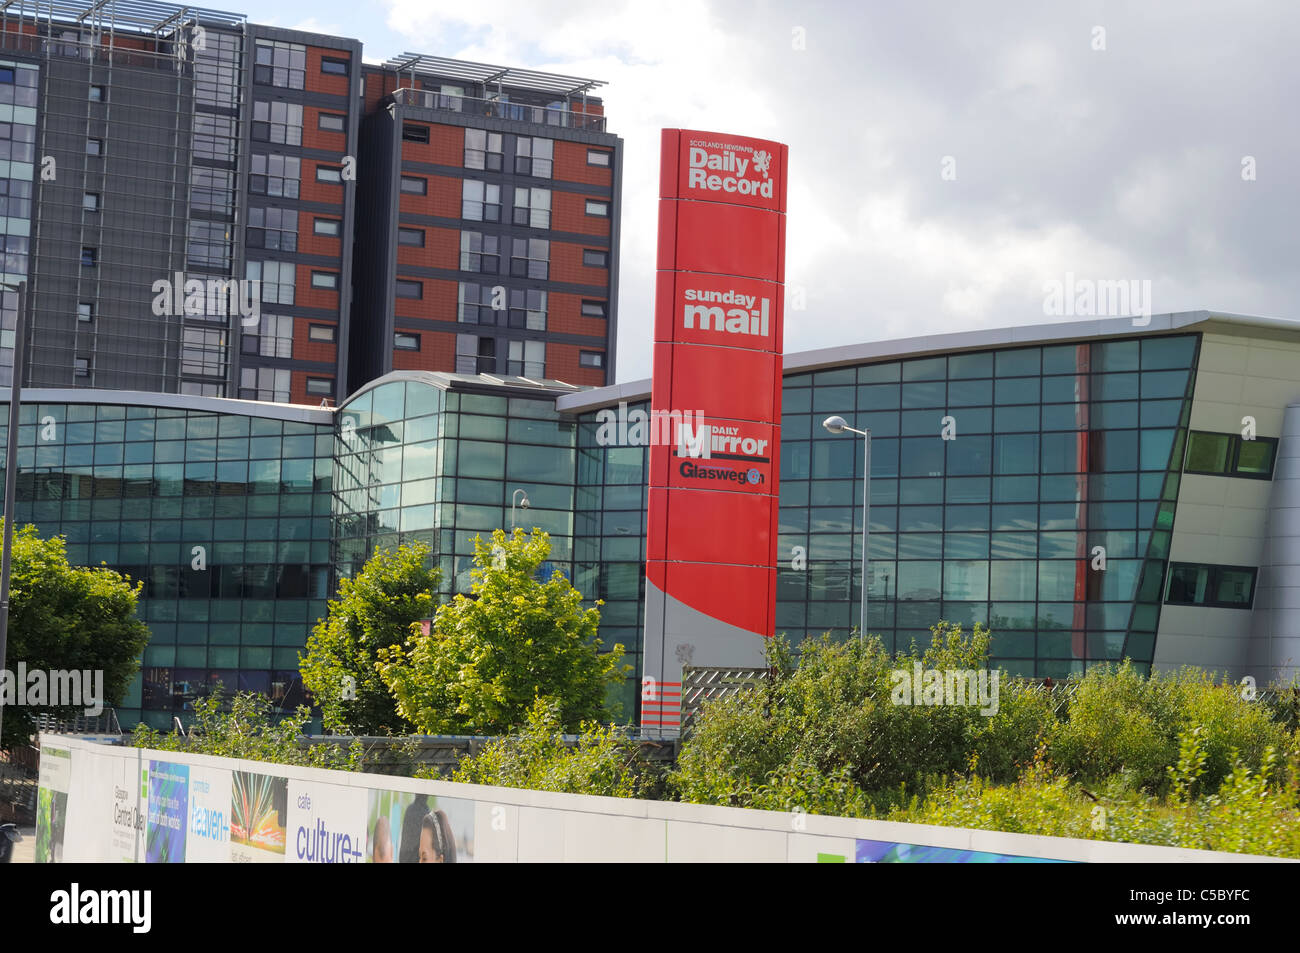 Daily Record Newspaper Building At Central Quay, Glasgow Scotland - Stock Image